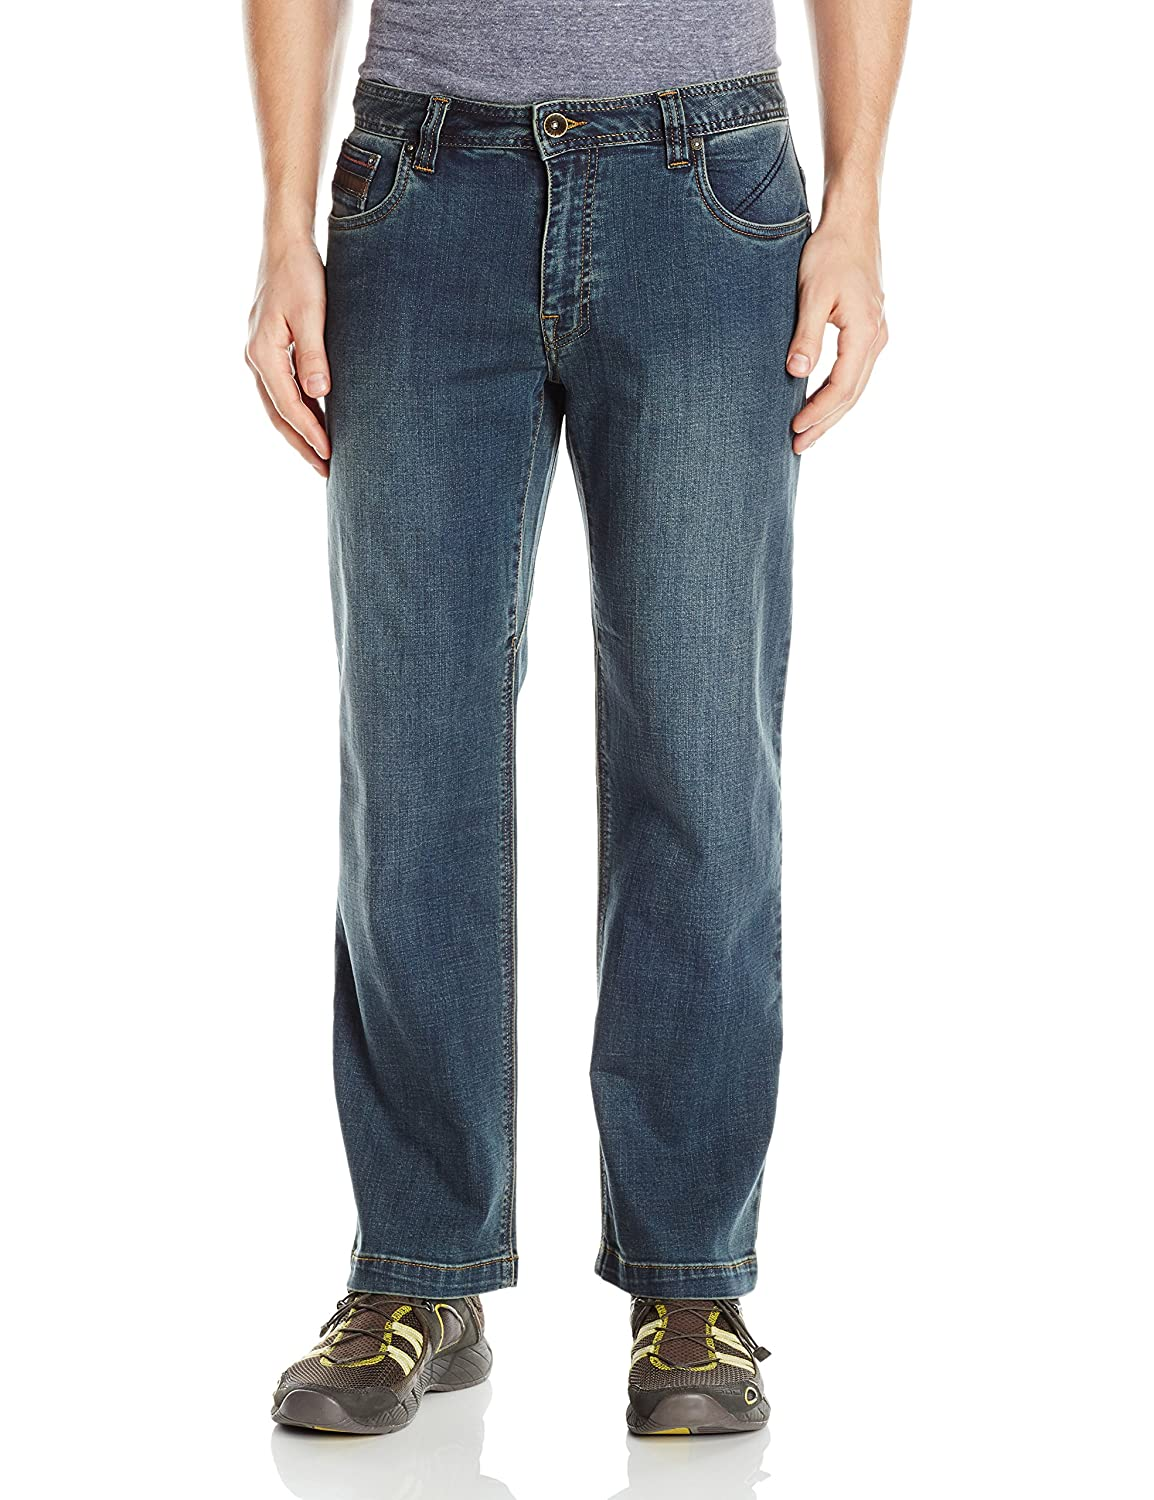 PrAna Men's M41173002 Axiom Jean 30